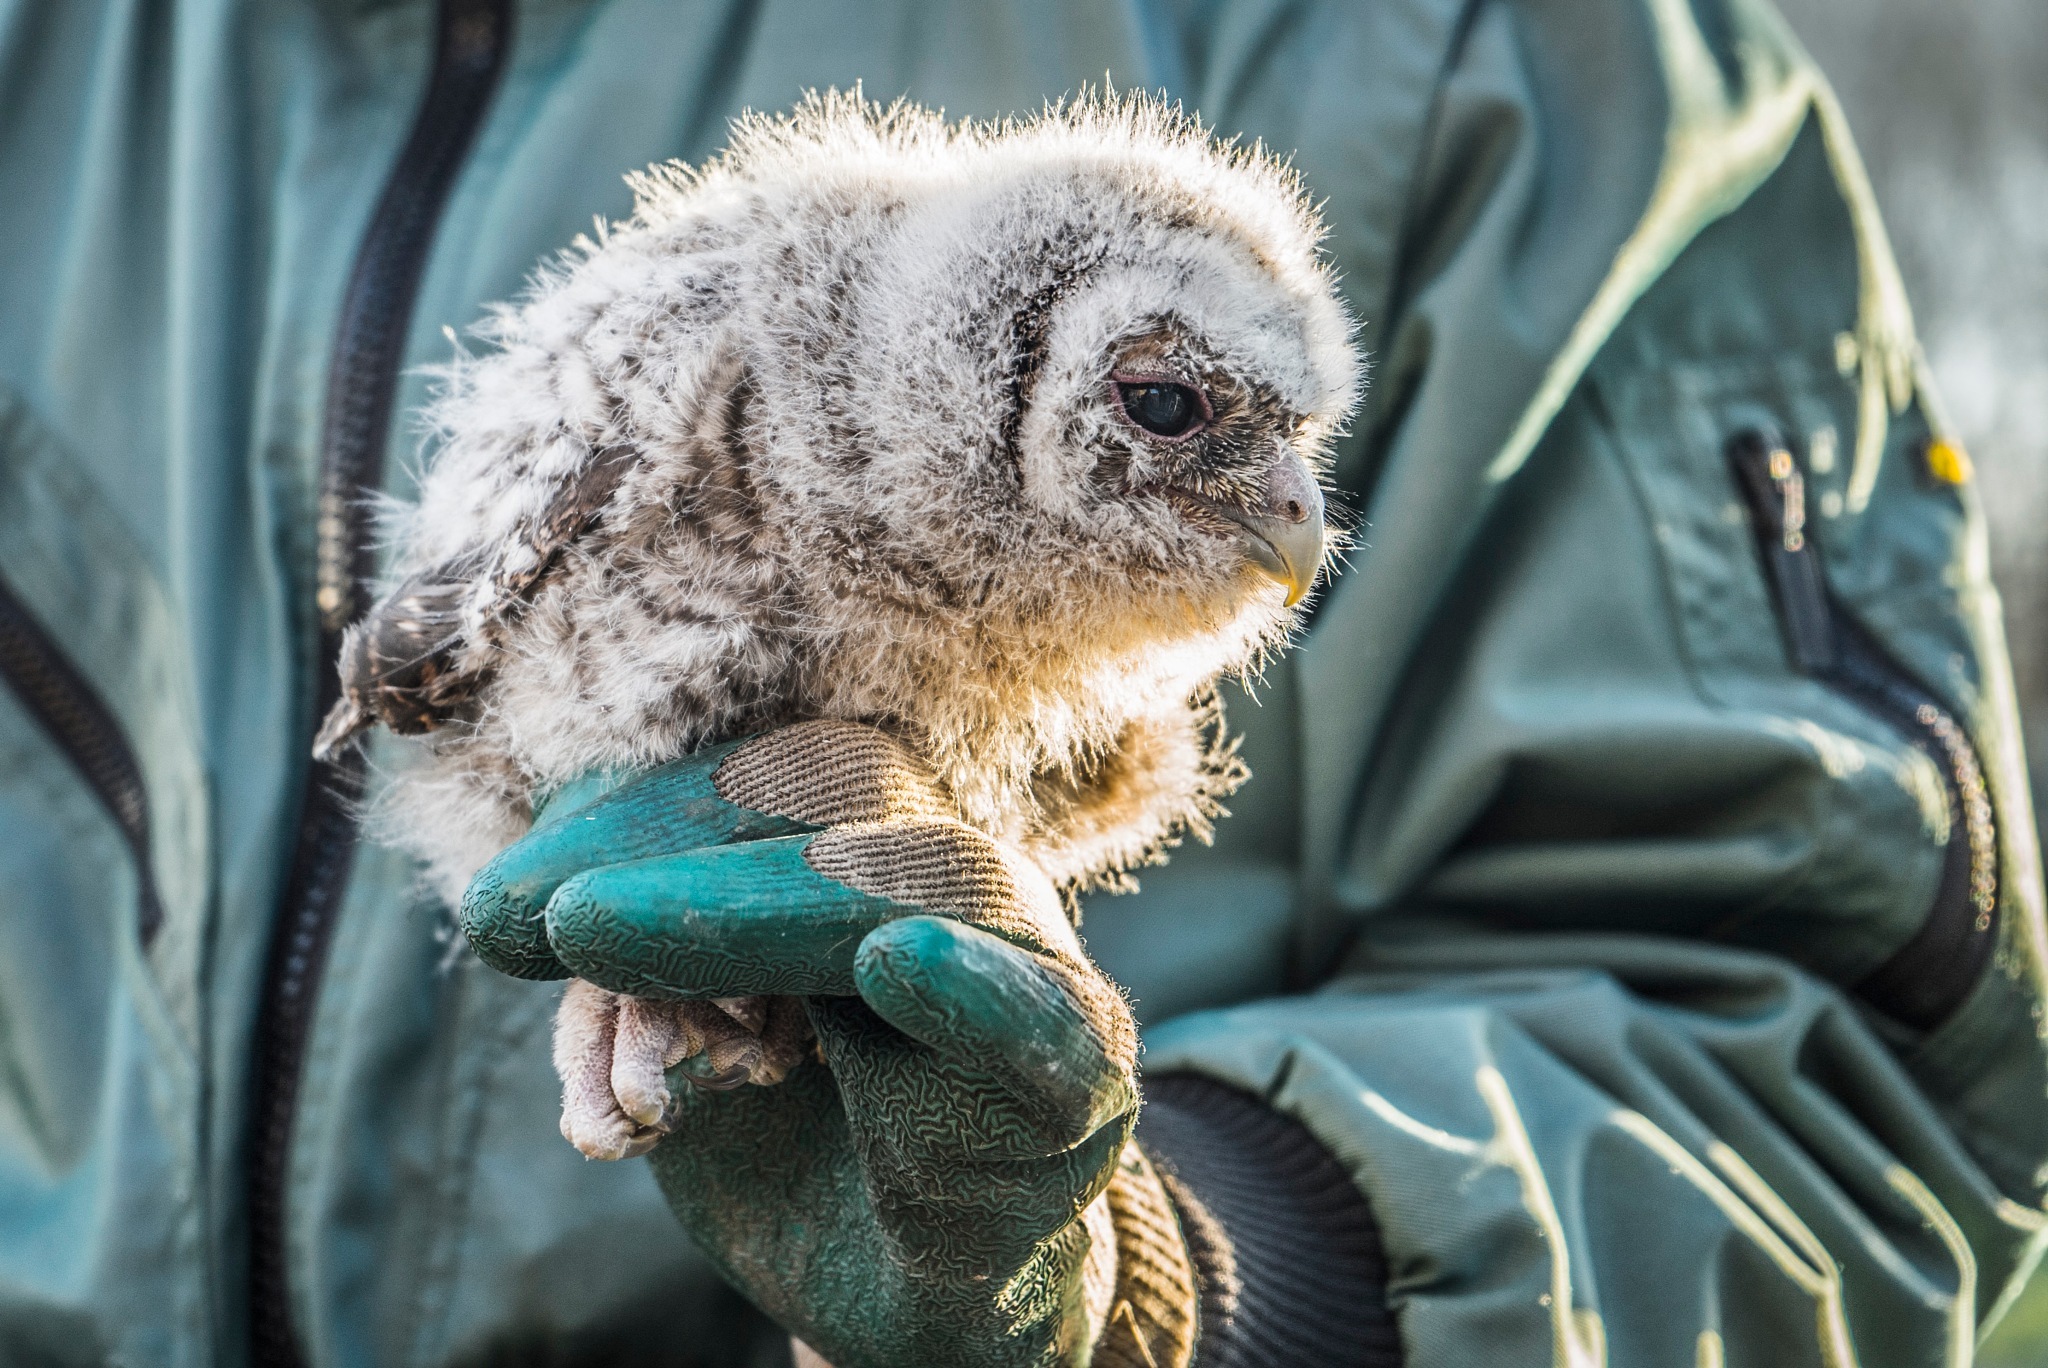 Young tawny owl by fred.leeflang.7